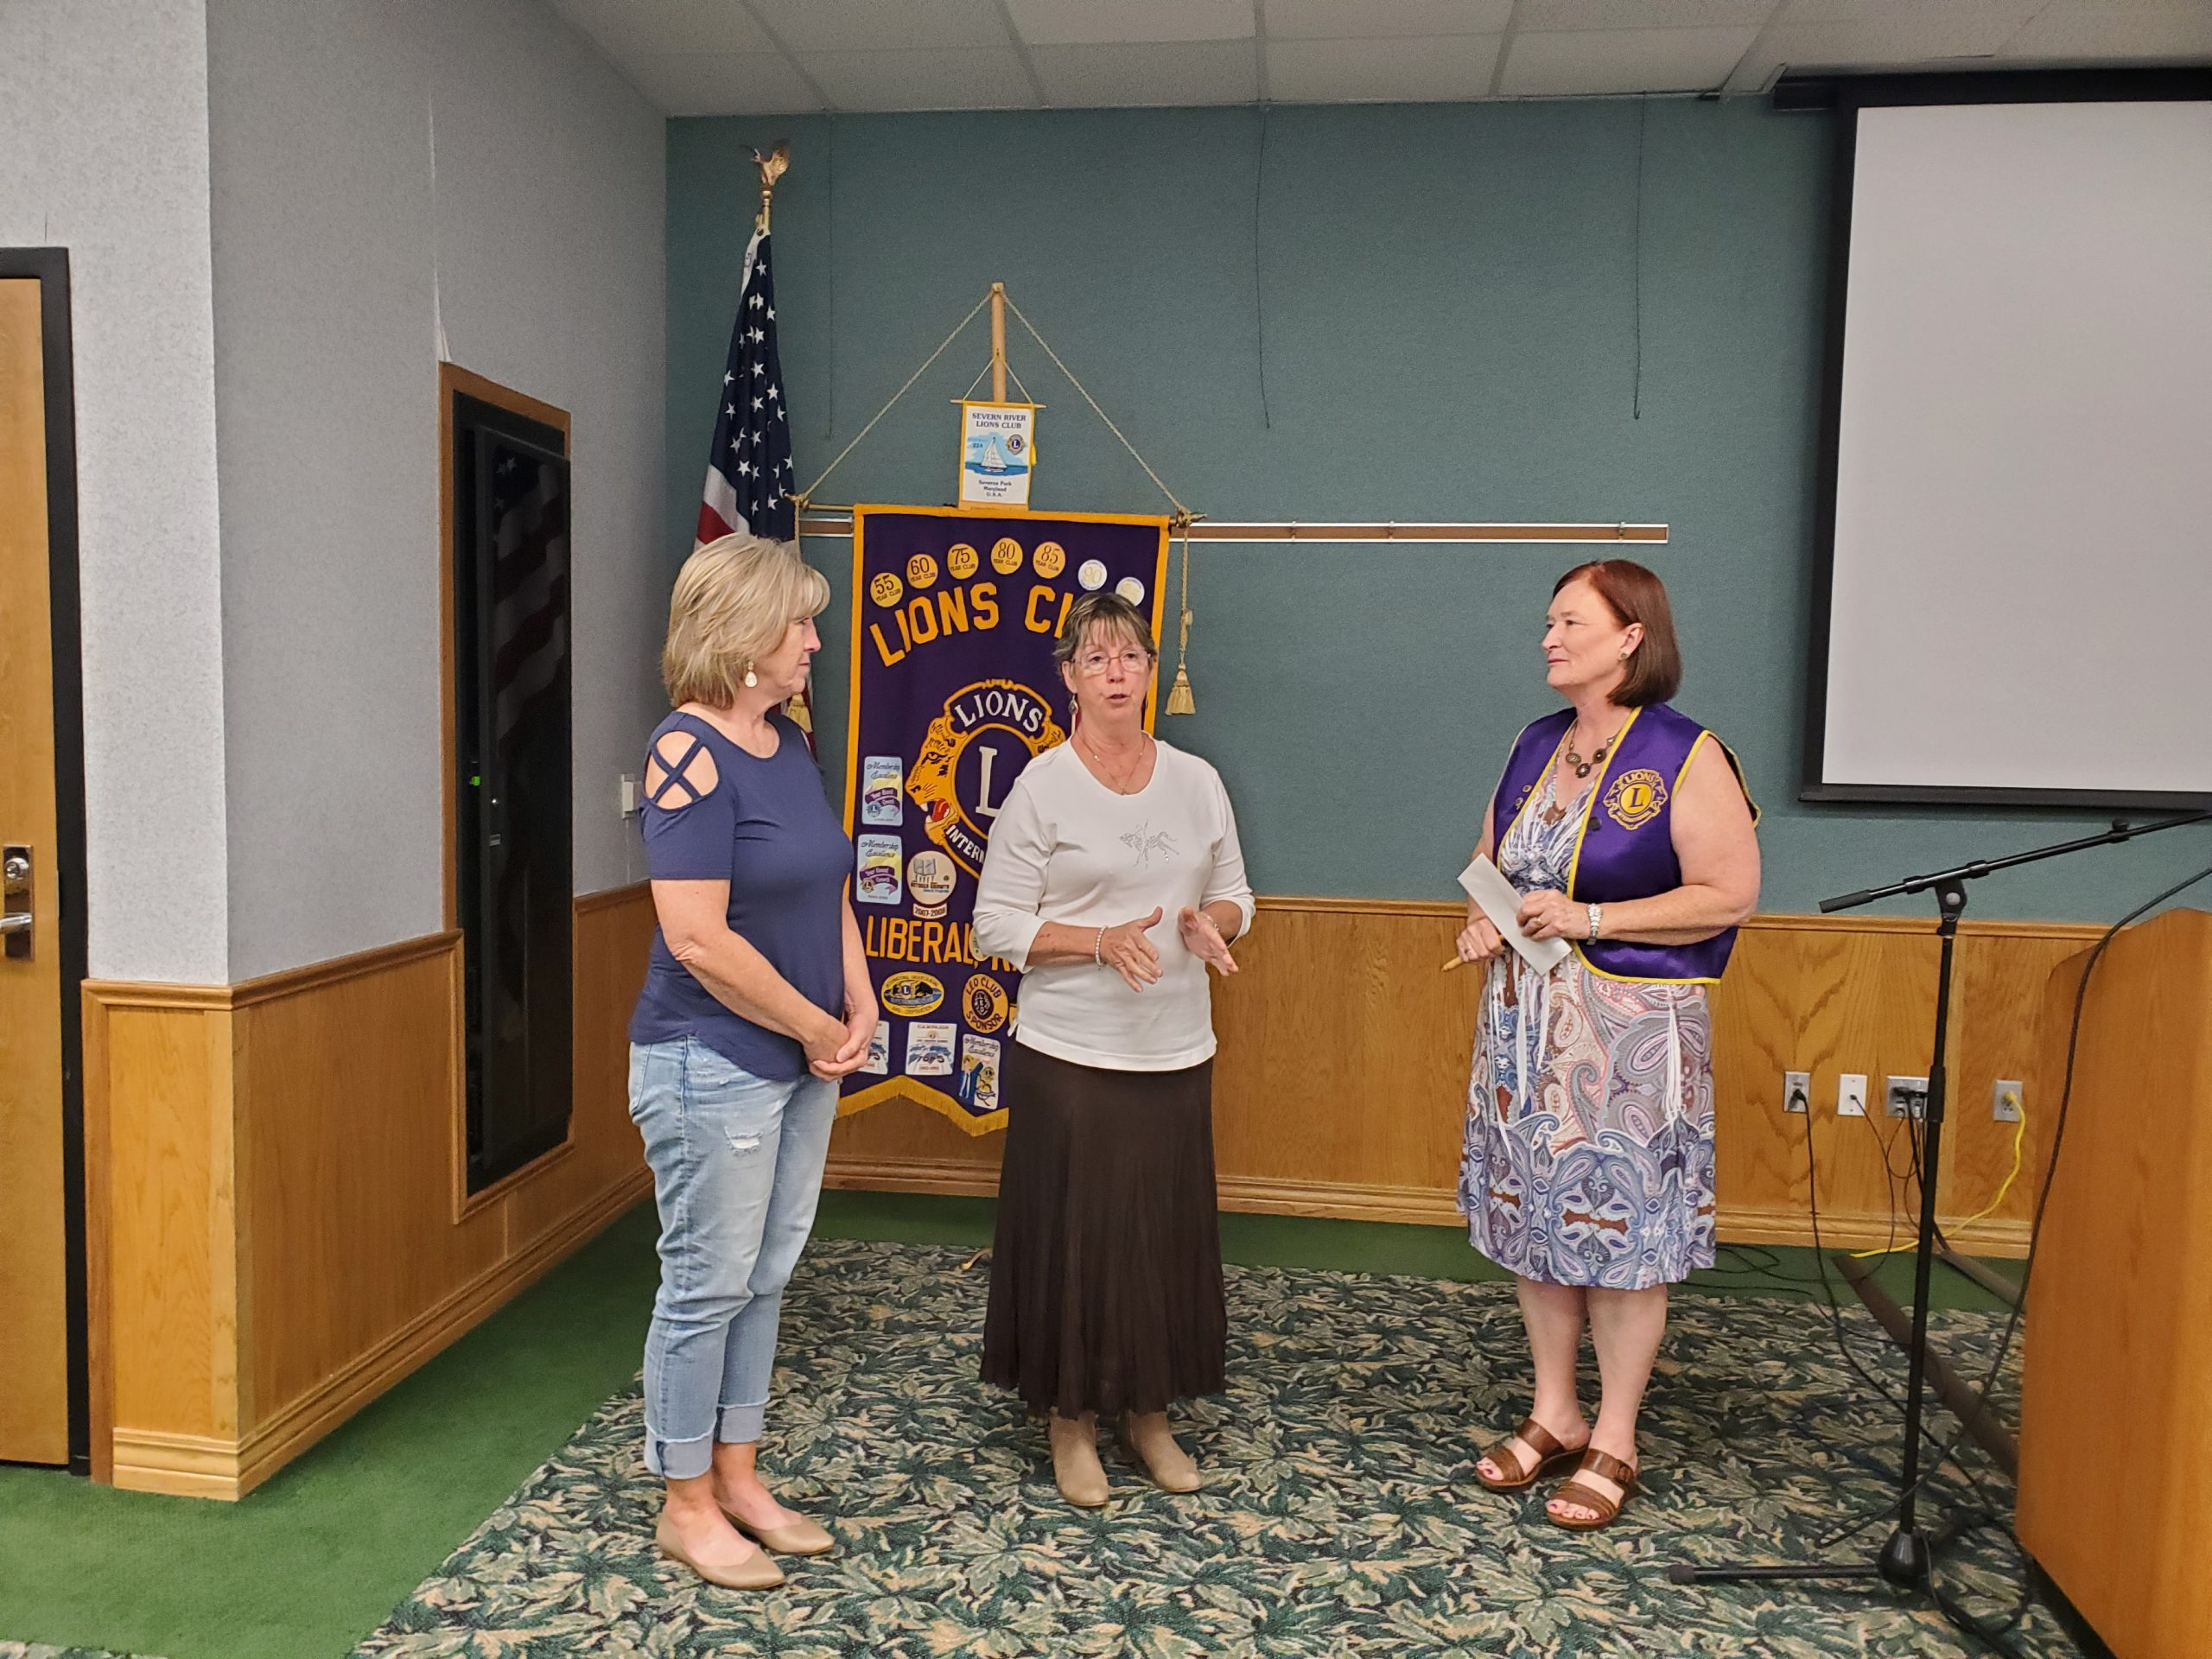 Liberal Noon Lions Club celebrates 100th Anniversary in Liberal